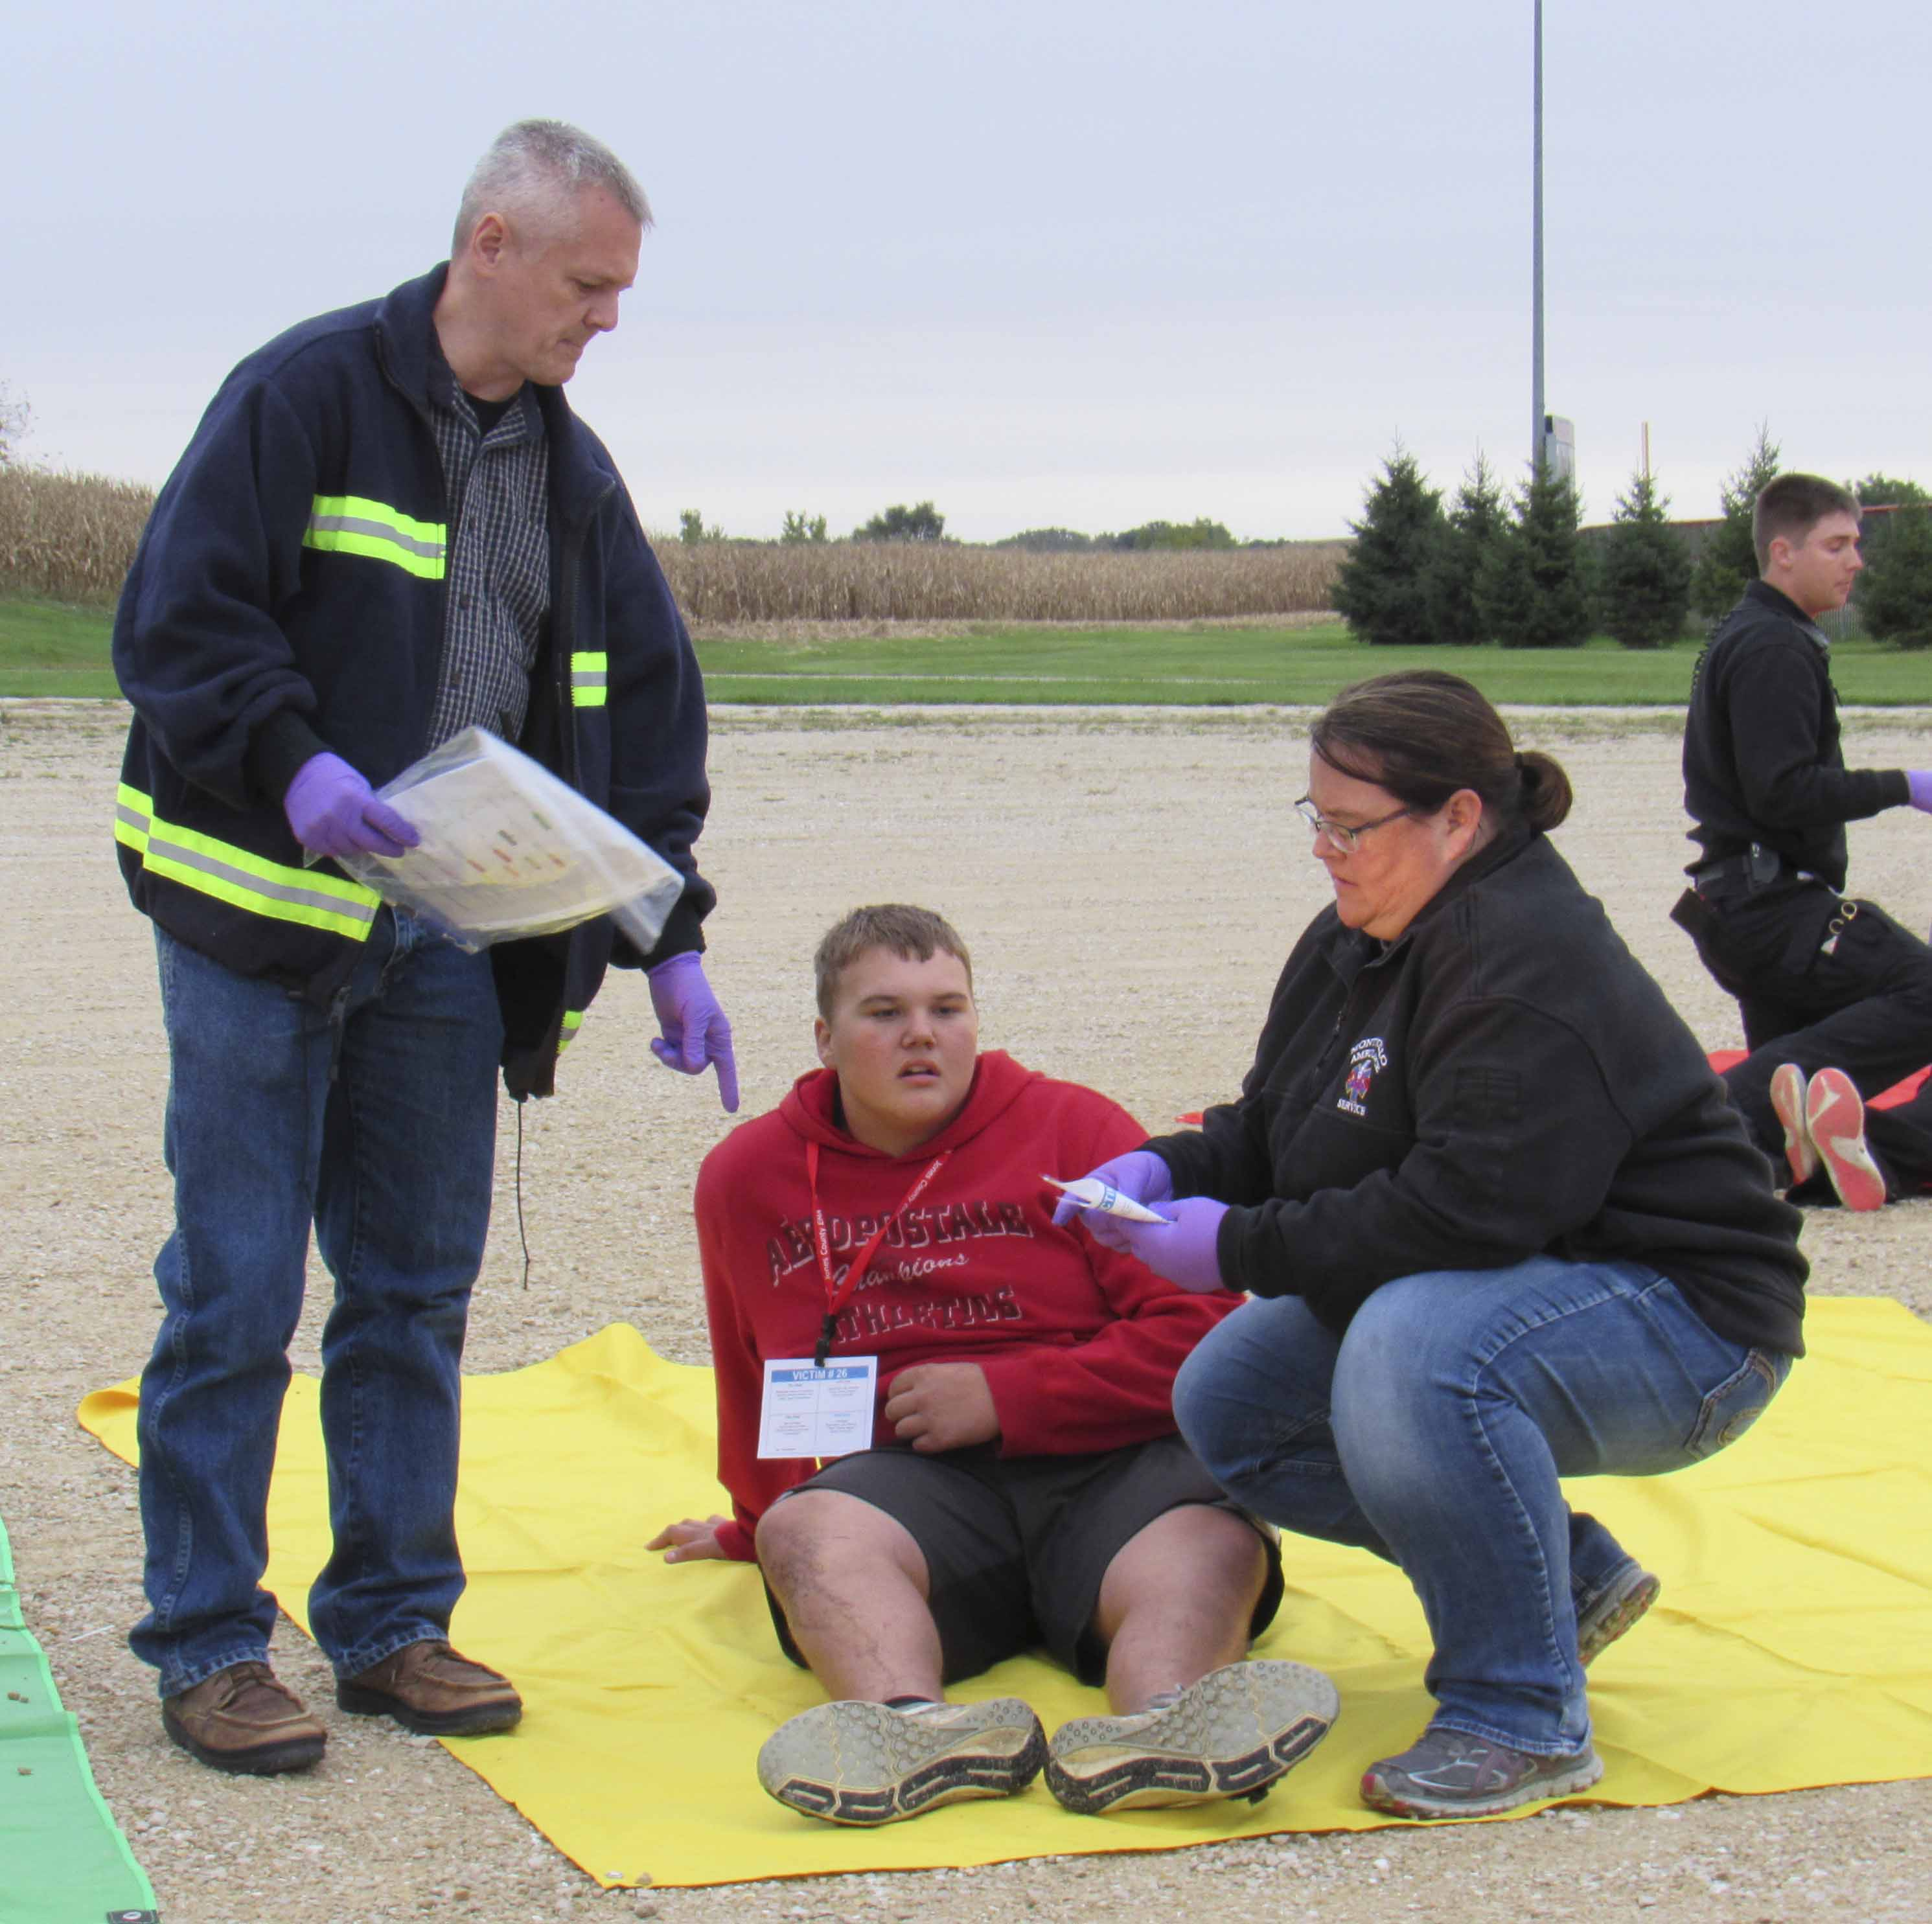 Several paramedics and EMTs took part in the training. Several high school students also volunteered their time to take on various victim roles. Here, Chris Bell and Mandy Norton tend to Kaden Kiburz who was on the soccer field during the chemical spill. (Photos by Kim Brooks)